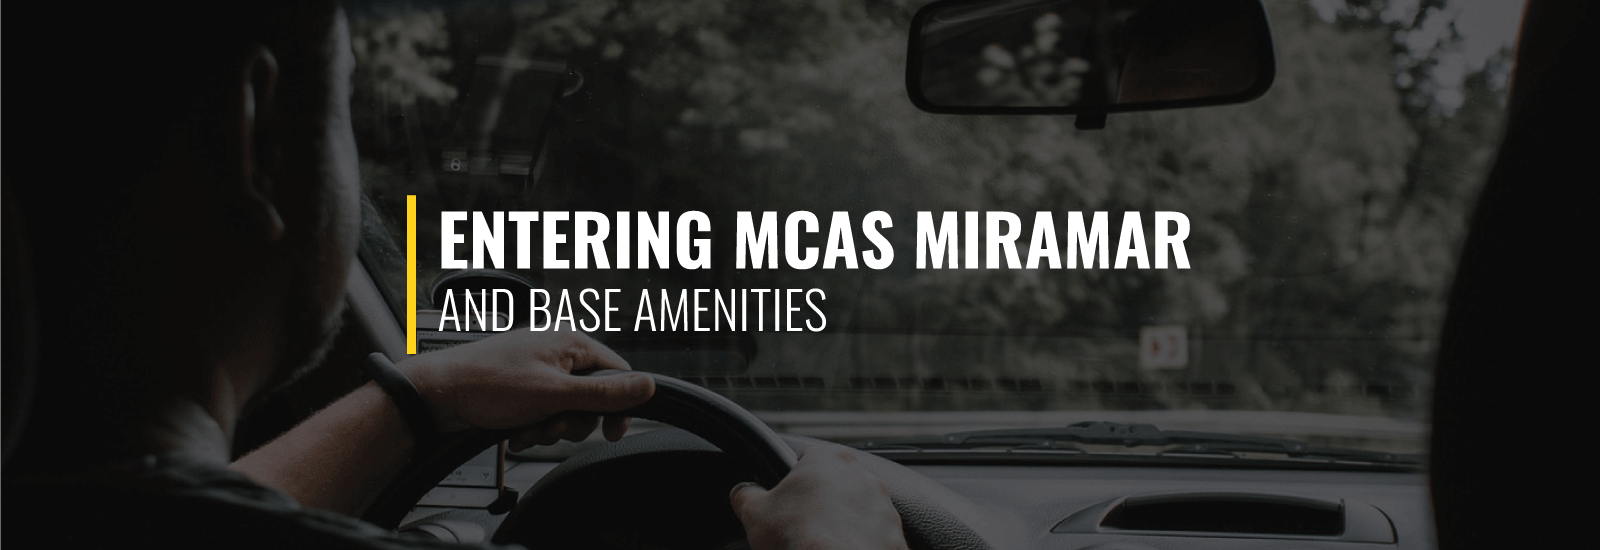 Entering MCAS Miramar and Base Amenities